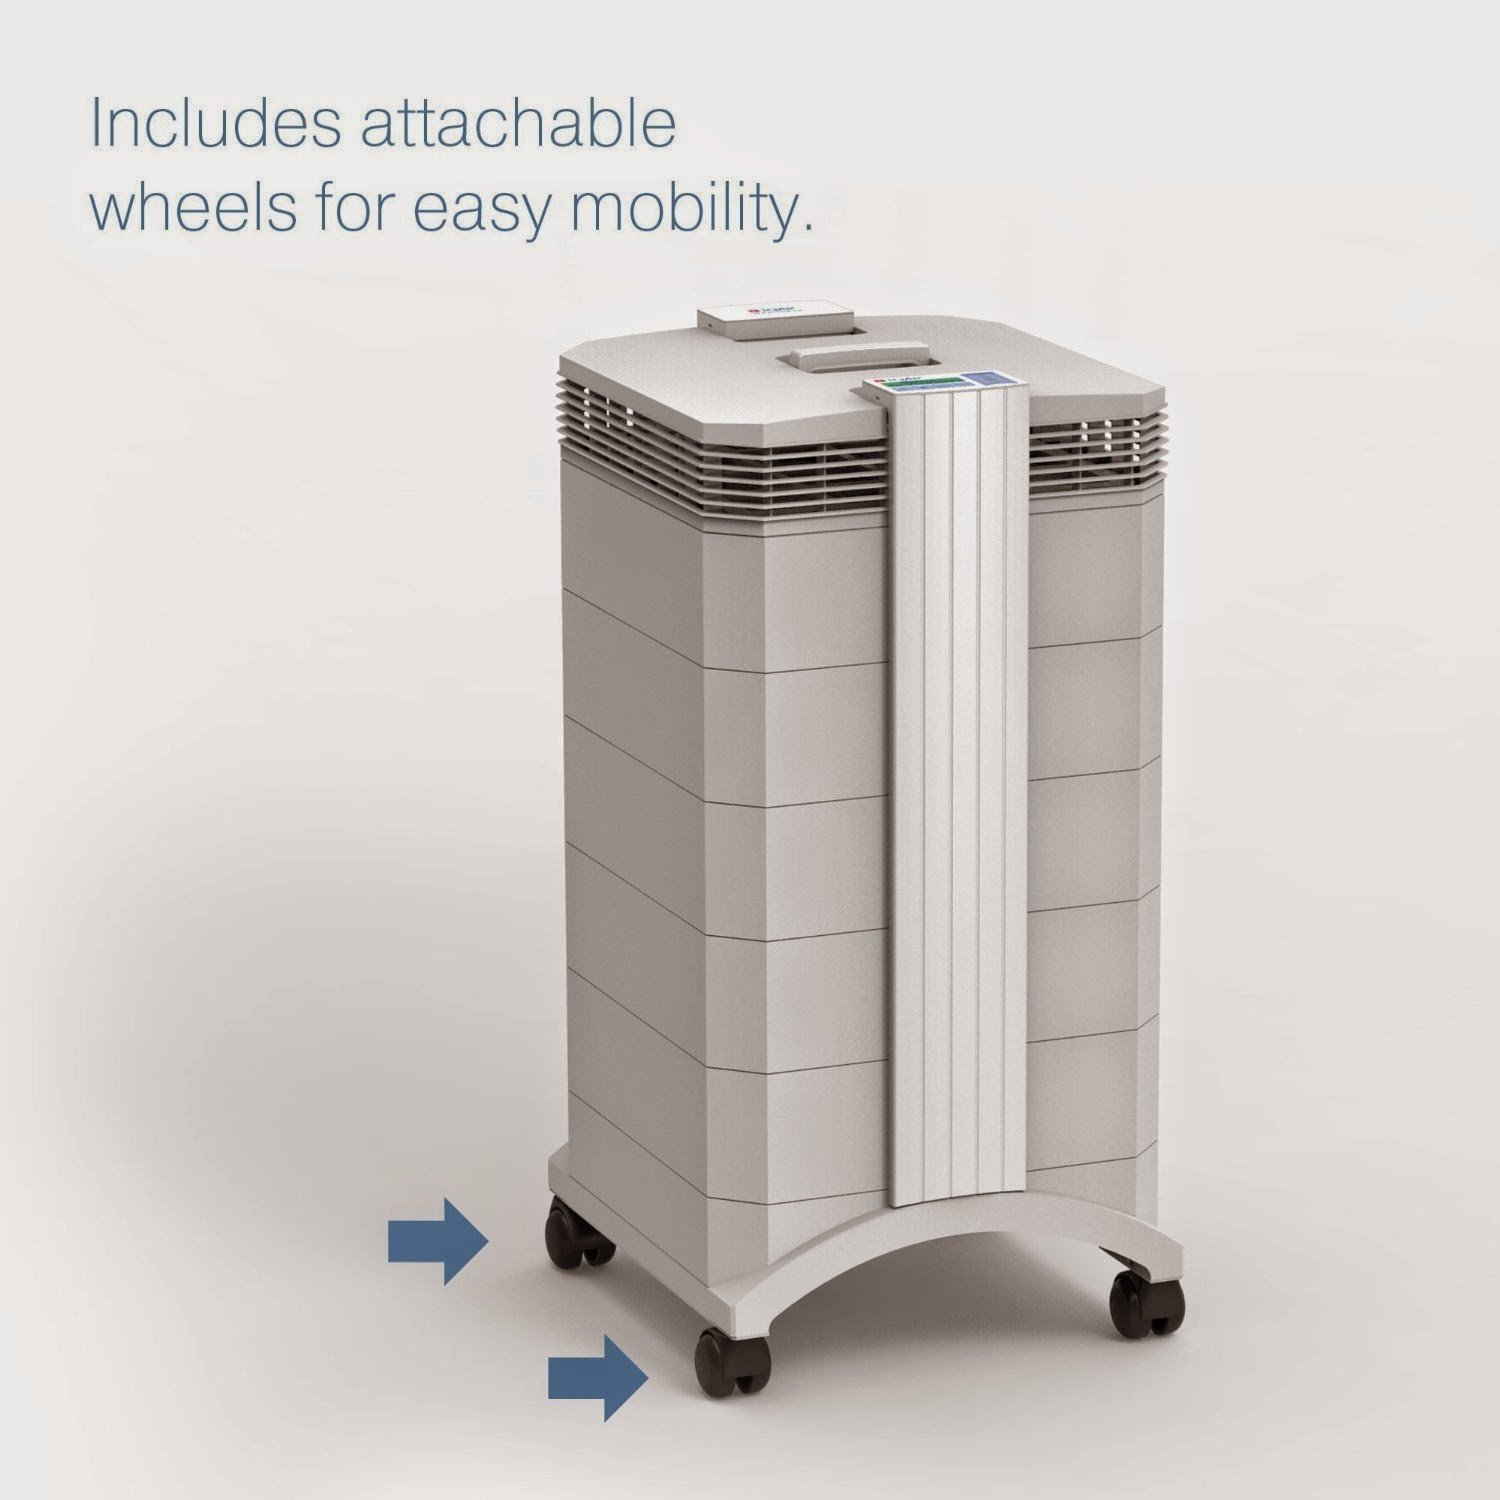 IQ HealthPro Plus Air Purifier with wheels for easy maneuverability, picture, image, review features and specifications